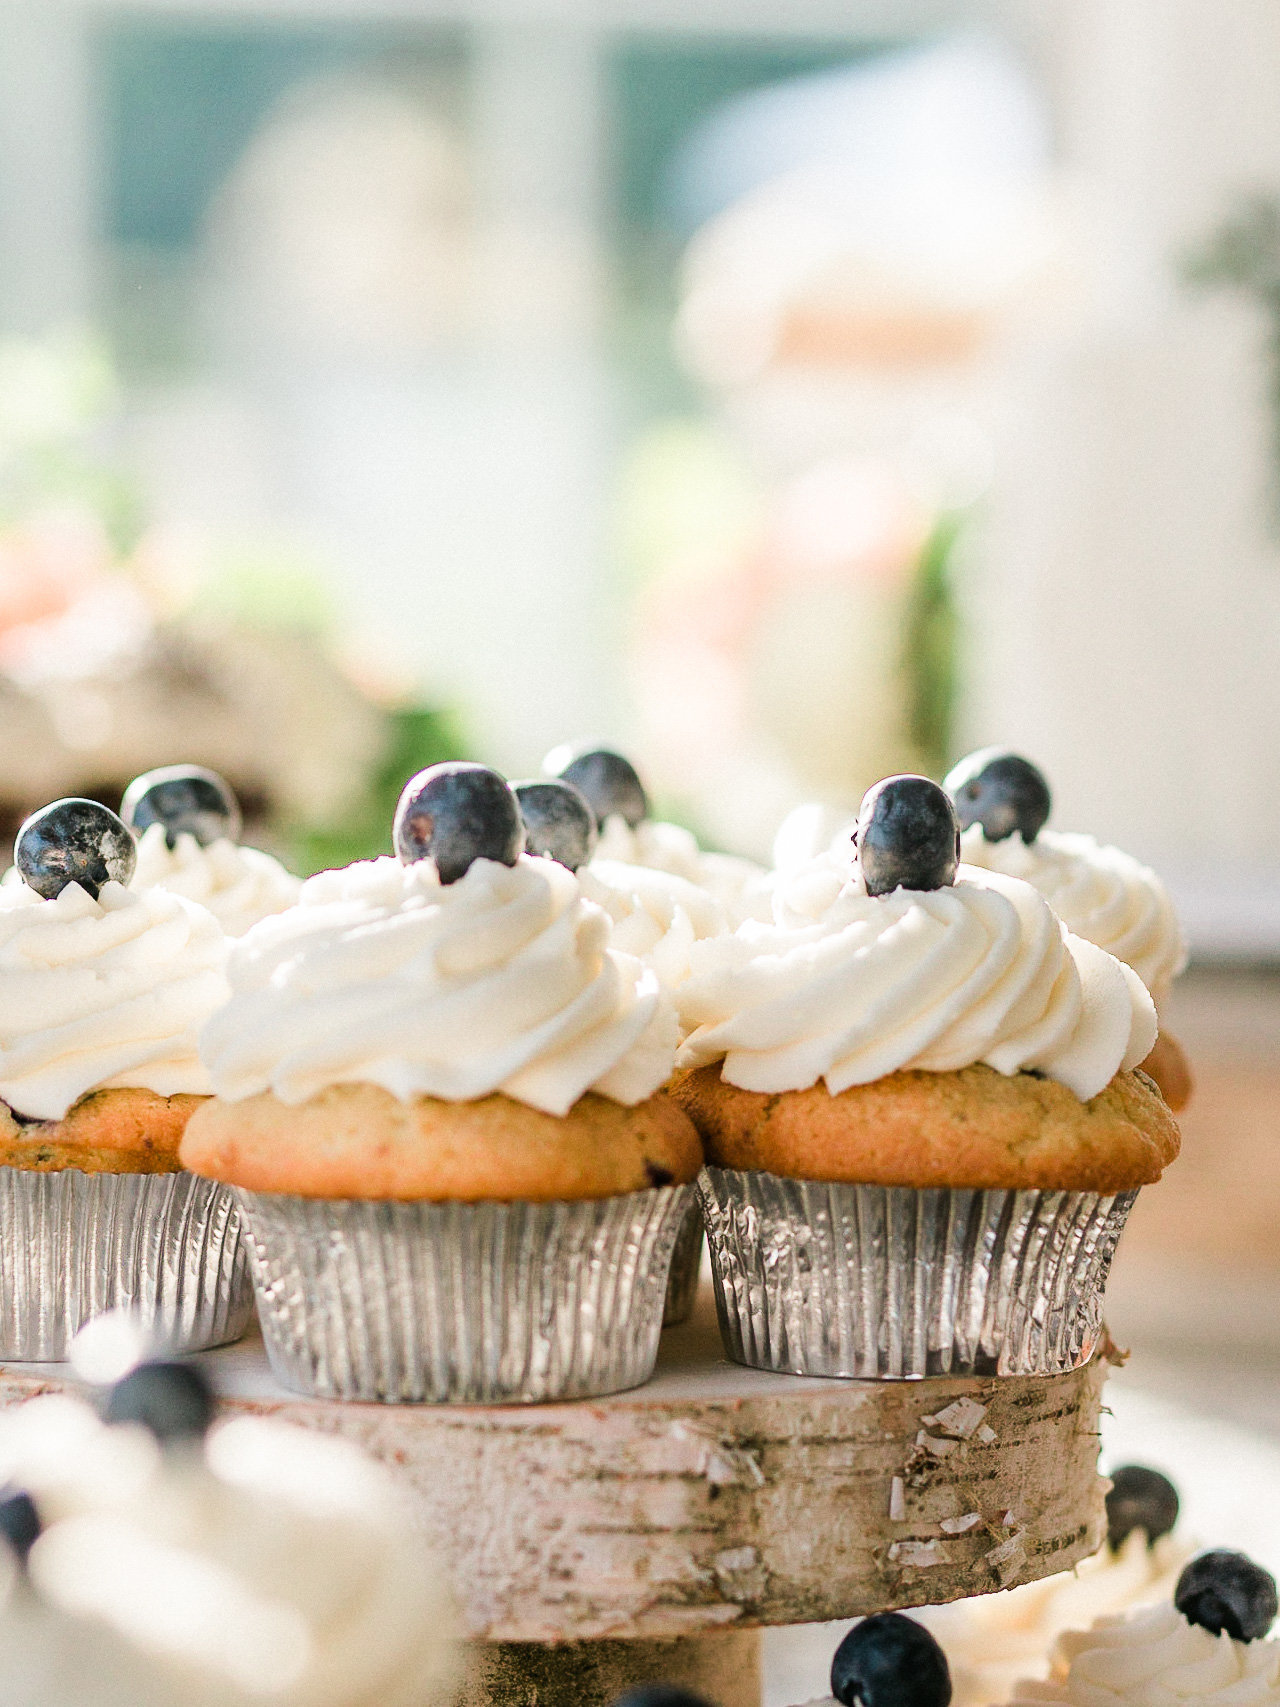 Country style cupcakes with blueberries on a birch wood stand